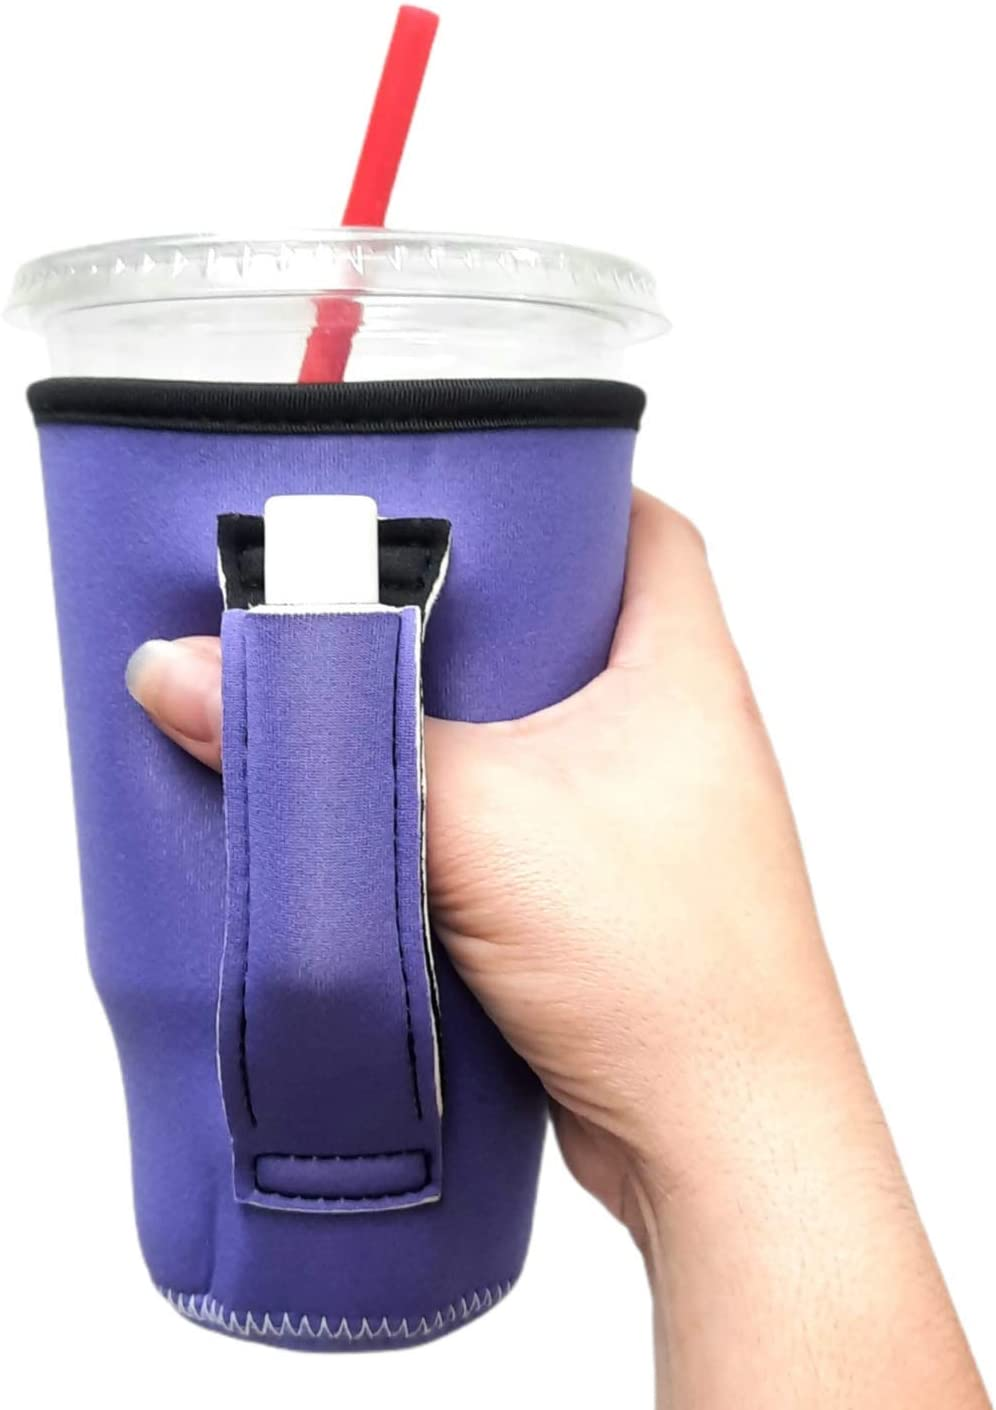 20oz Tumbler Handler with Pocket COMPATIBLE with Blender Bottles, 20oz Tumblers, Large Soft Drinks/Loaded Teas, Venti Coffee, patent pending (Purple)